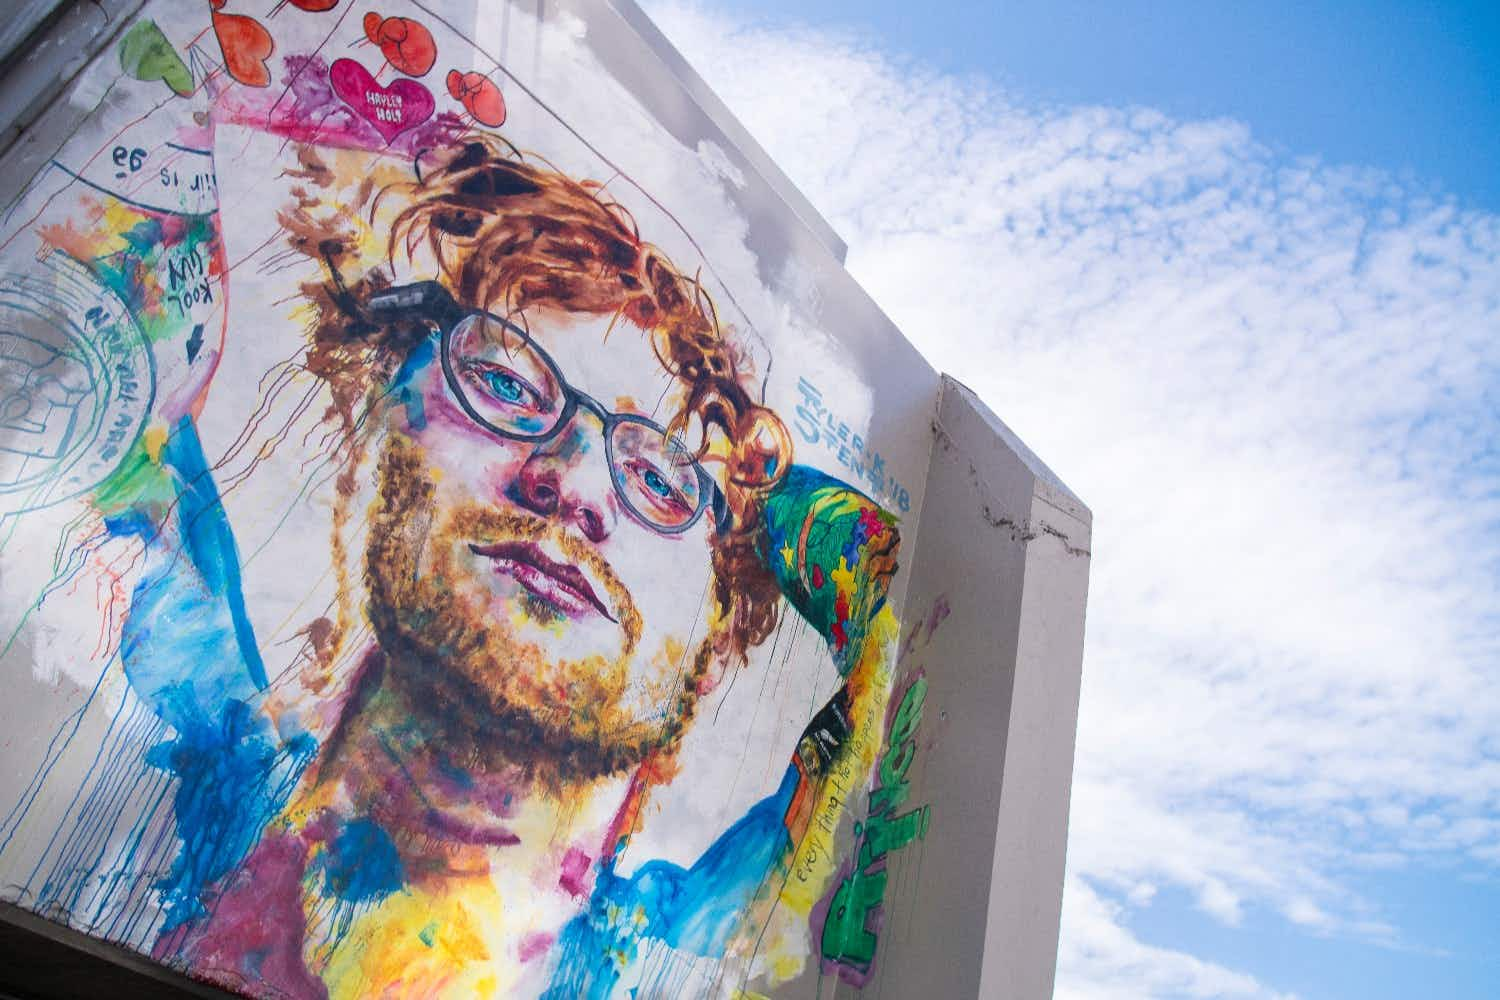 A giant street art mural of Ed Sheeran has been painted in New Zealand